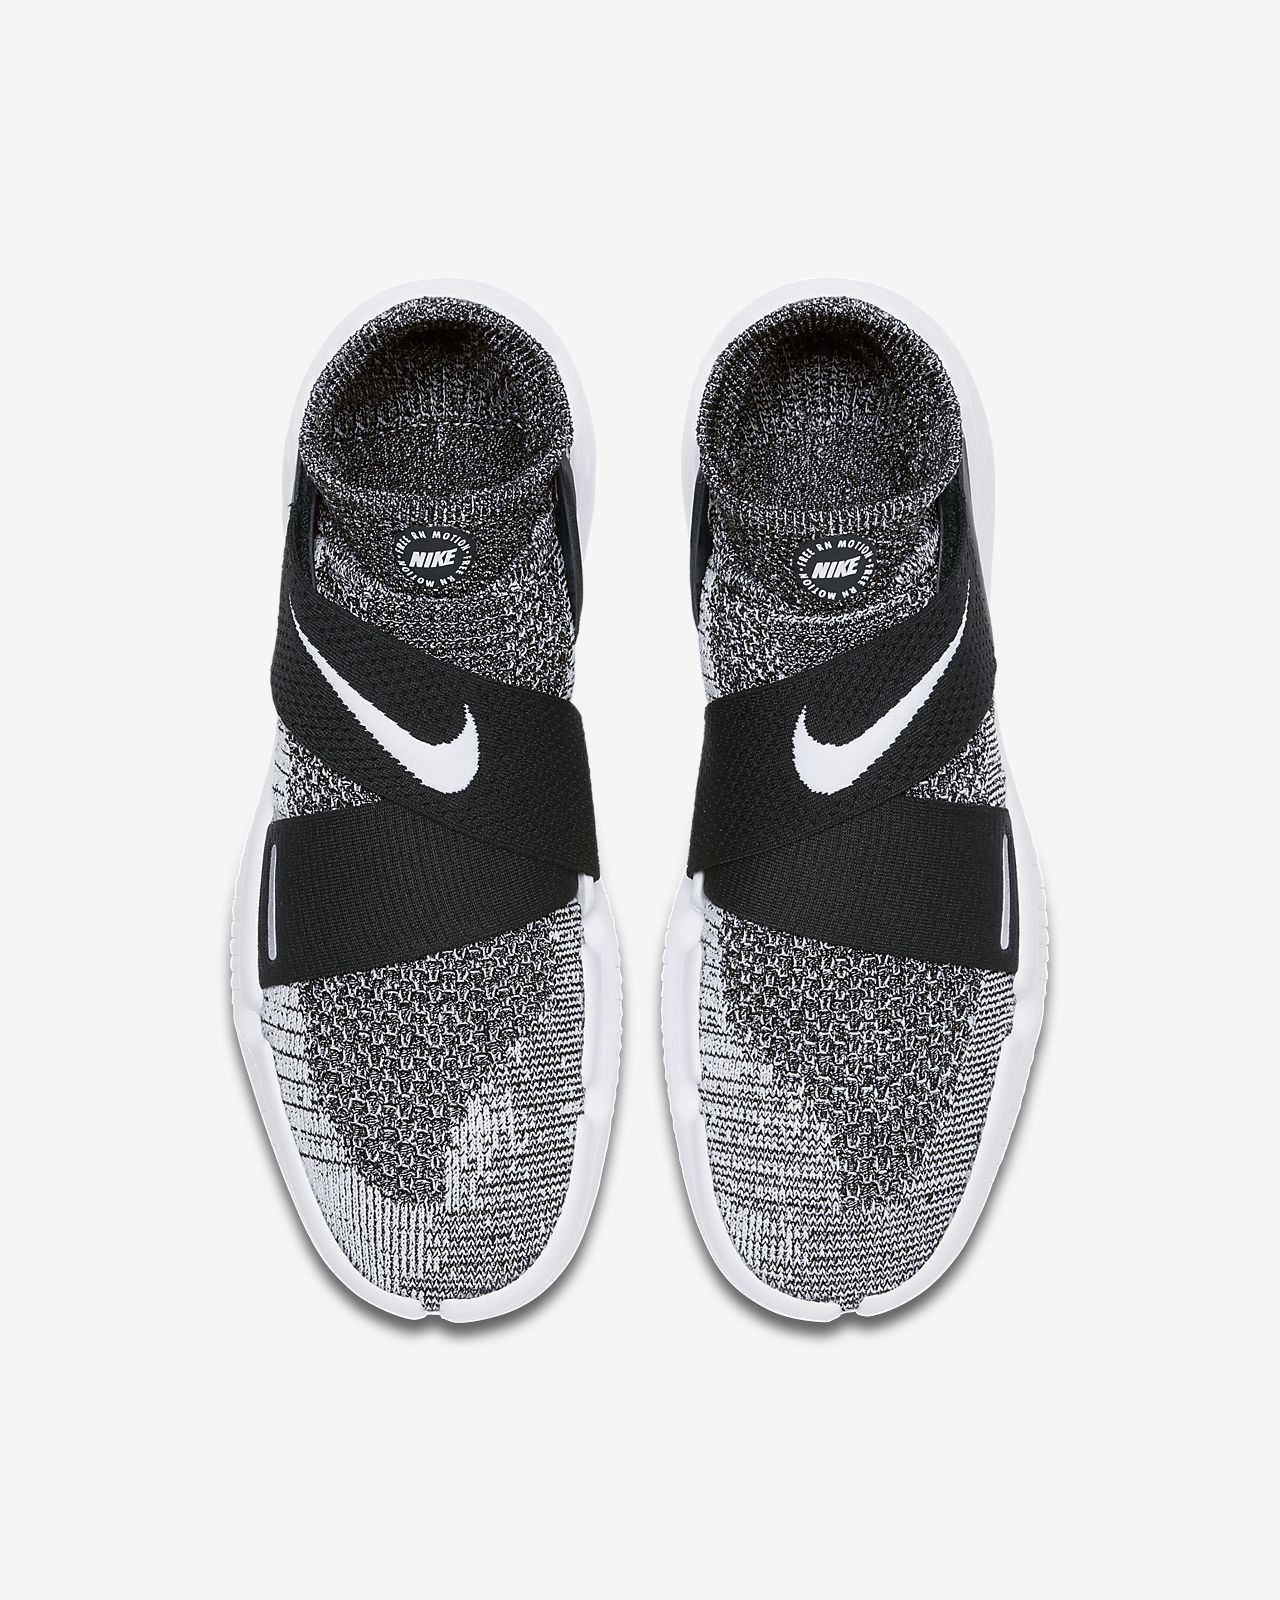 5ca0934de87 Nike Free RN Motion Flyknit 2018 Men s Running Shoe by Nike ...